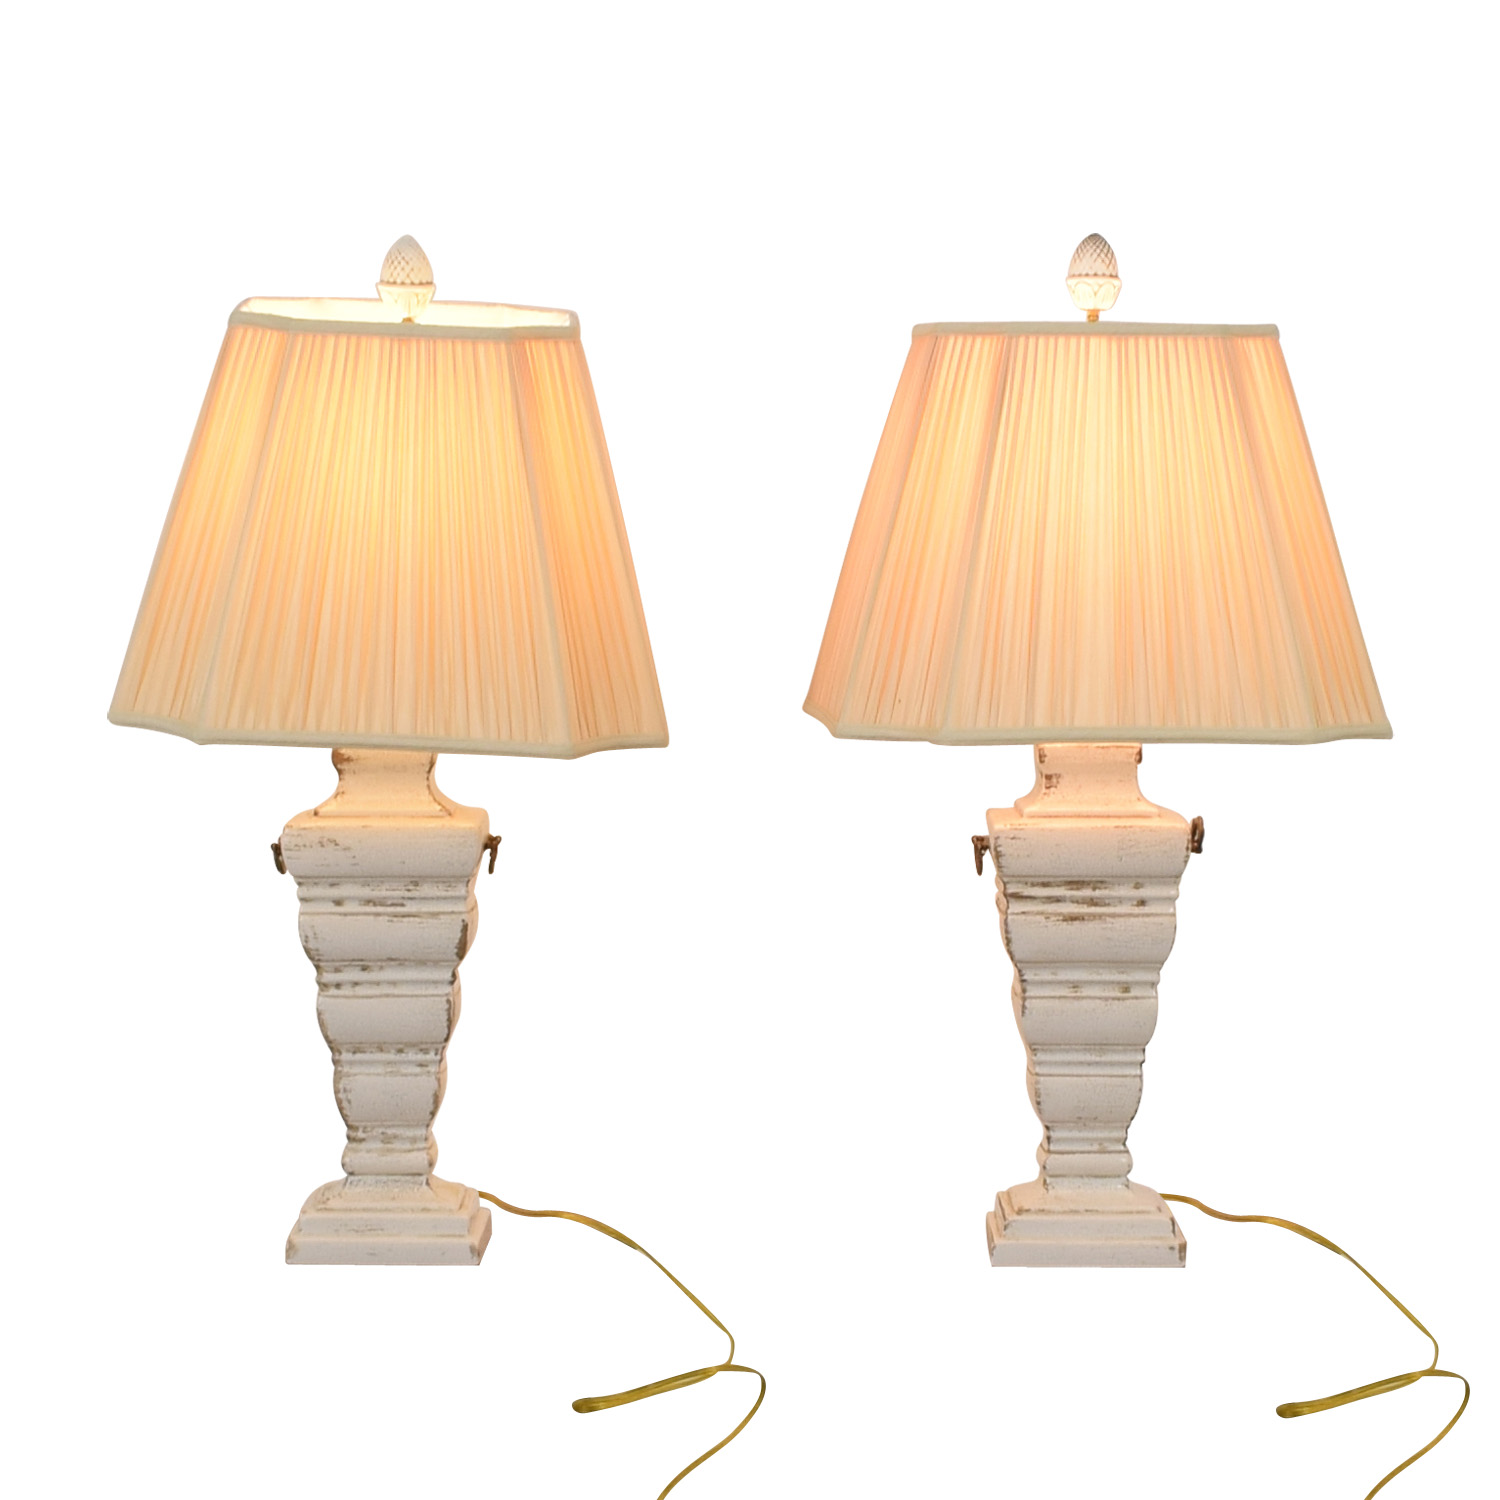 shop The Bradburn Gallery Cream Table Lamps The Bradburn Gallery